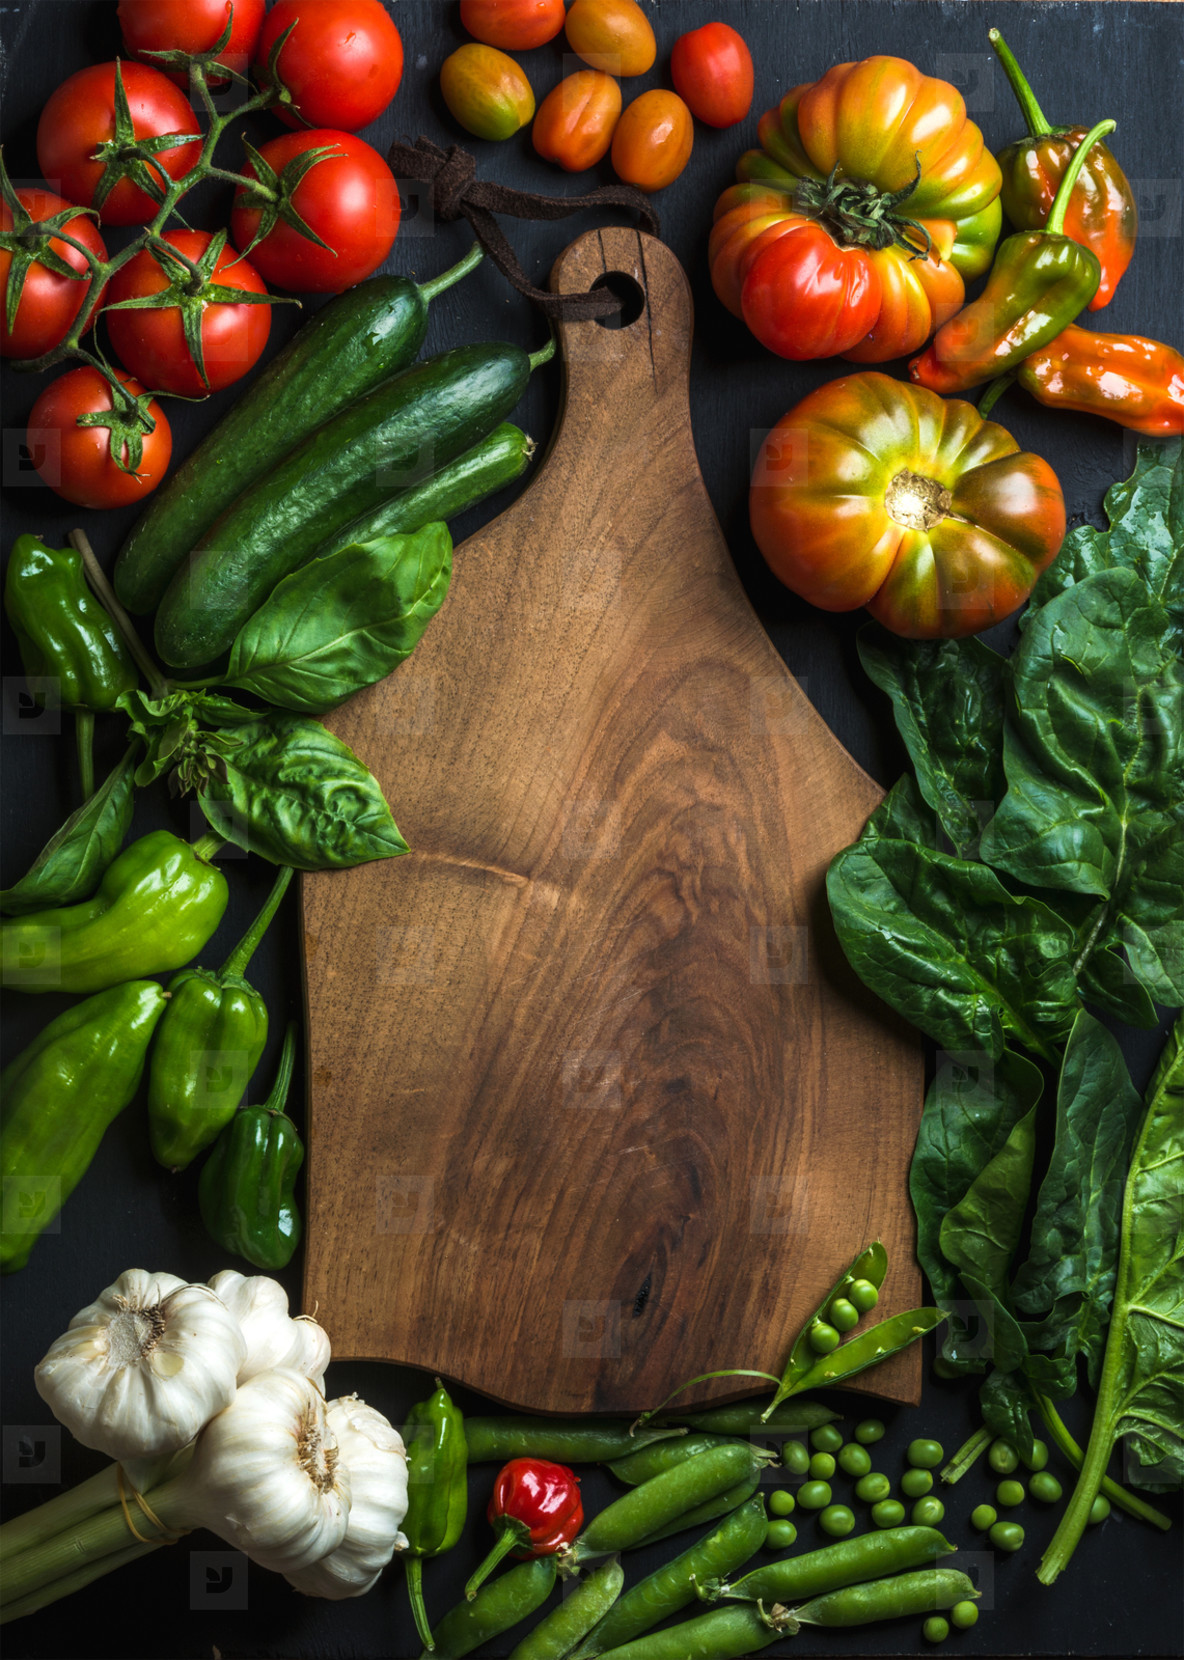 Fresh raw ingredients for healthy cooking or salad making with dark wooden cutting baoard in center  top view  copy space